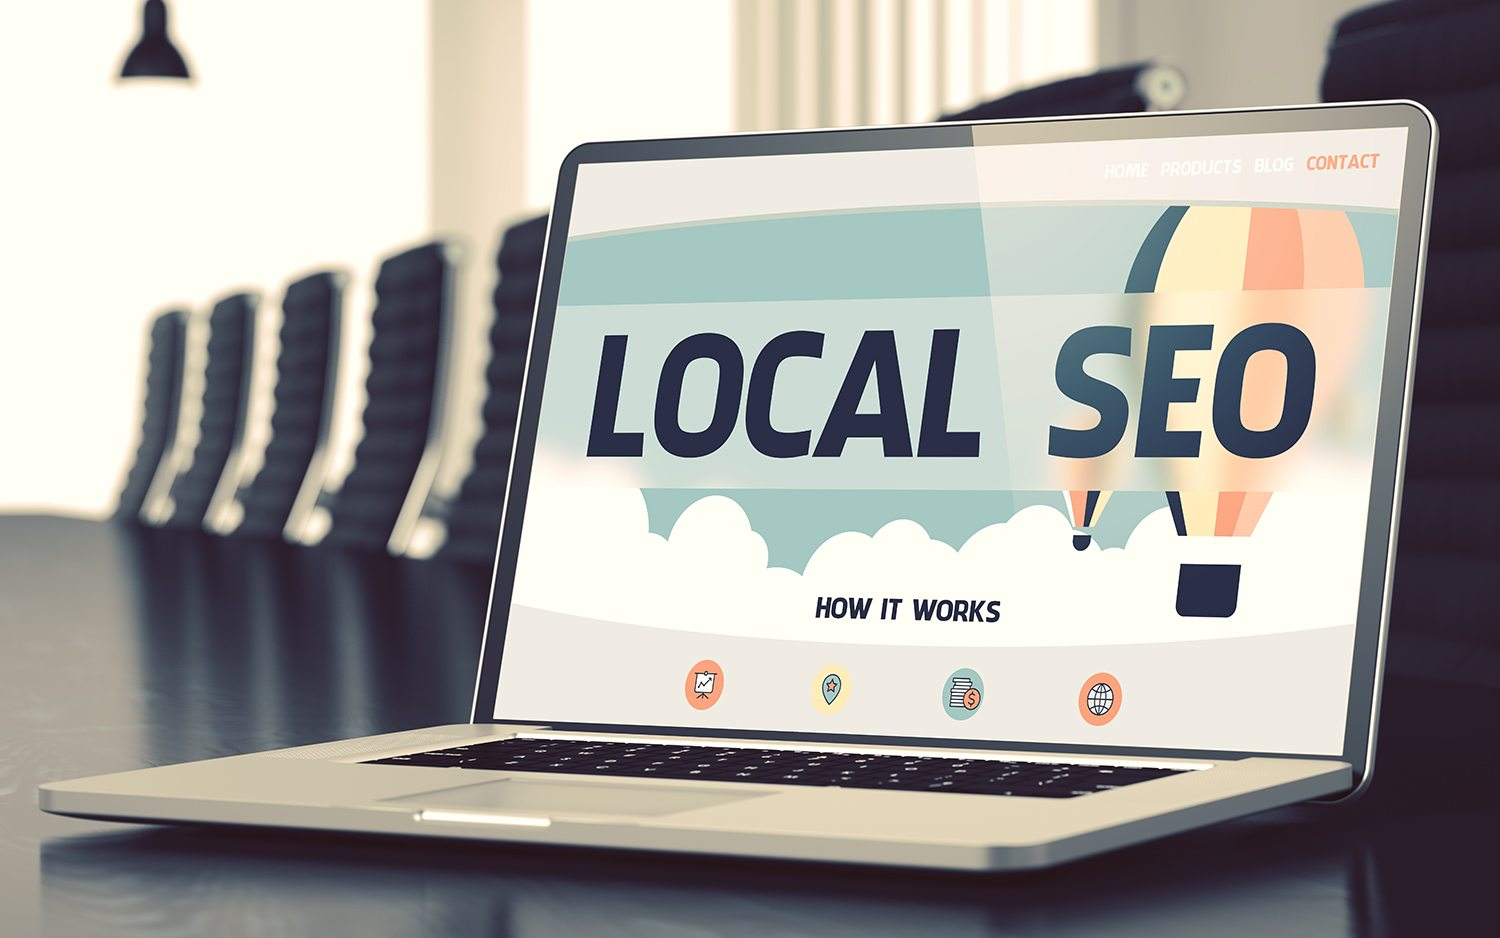 Local SEO Small Business